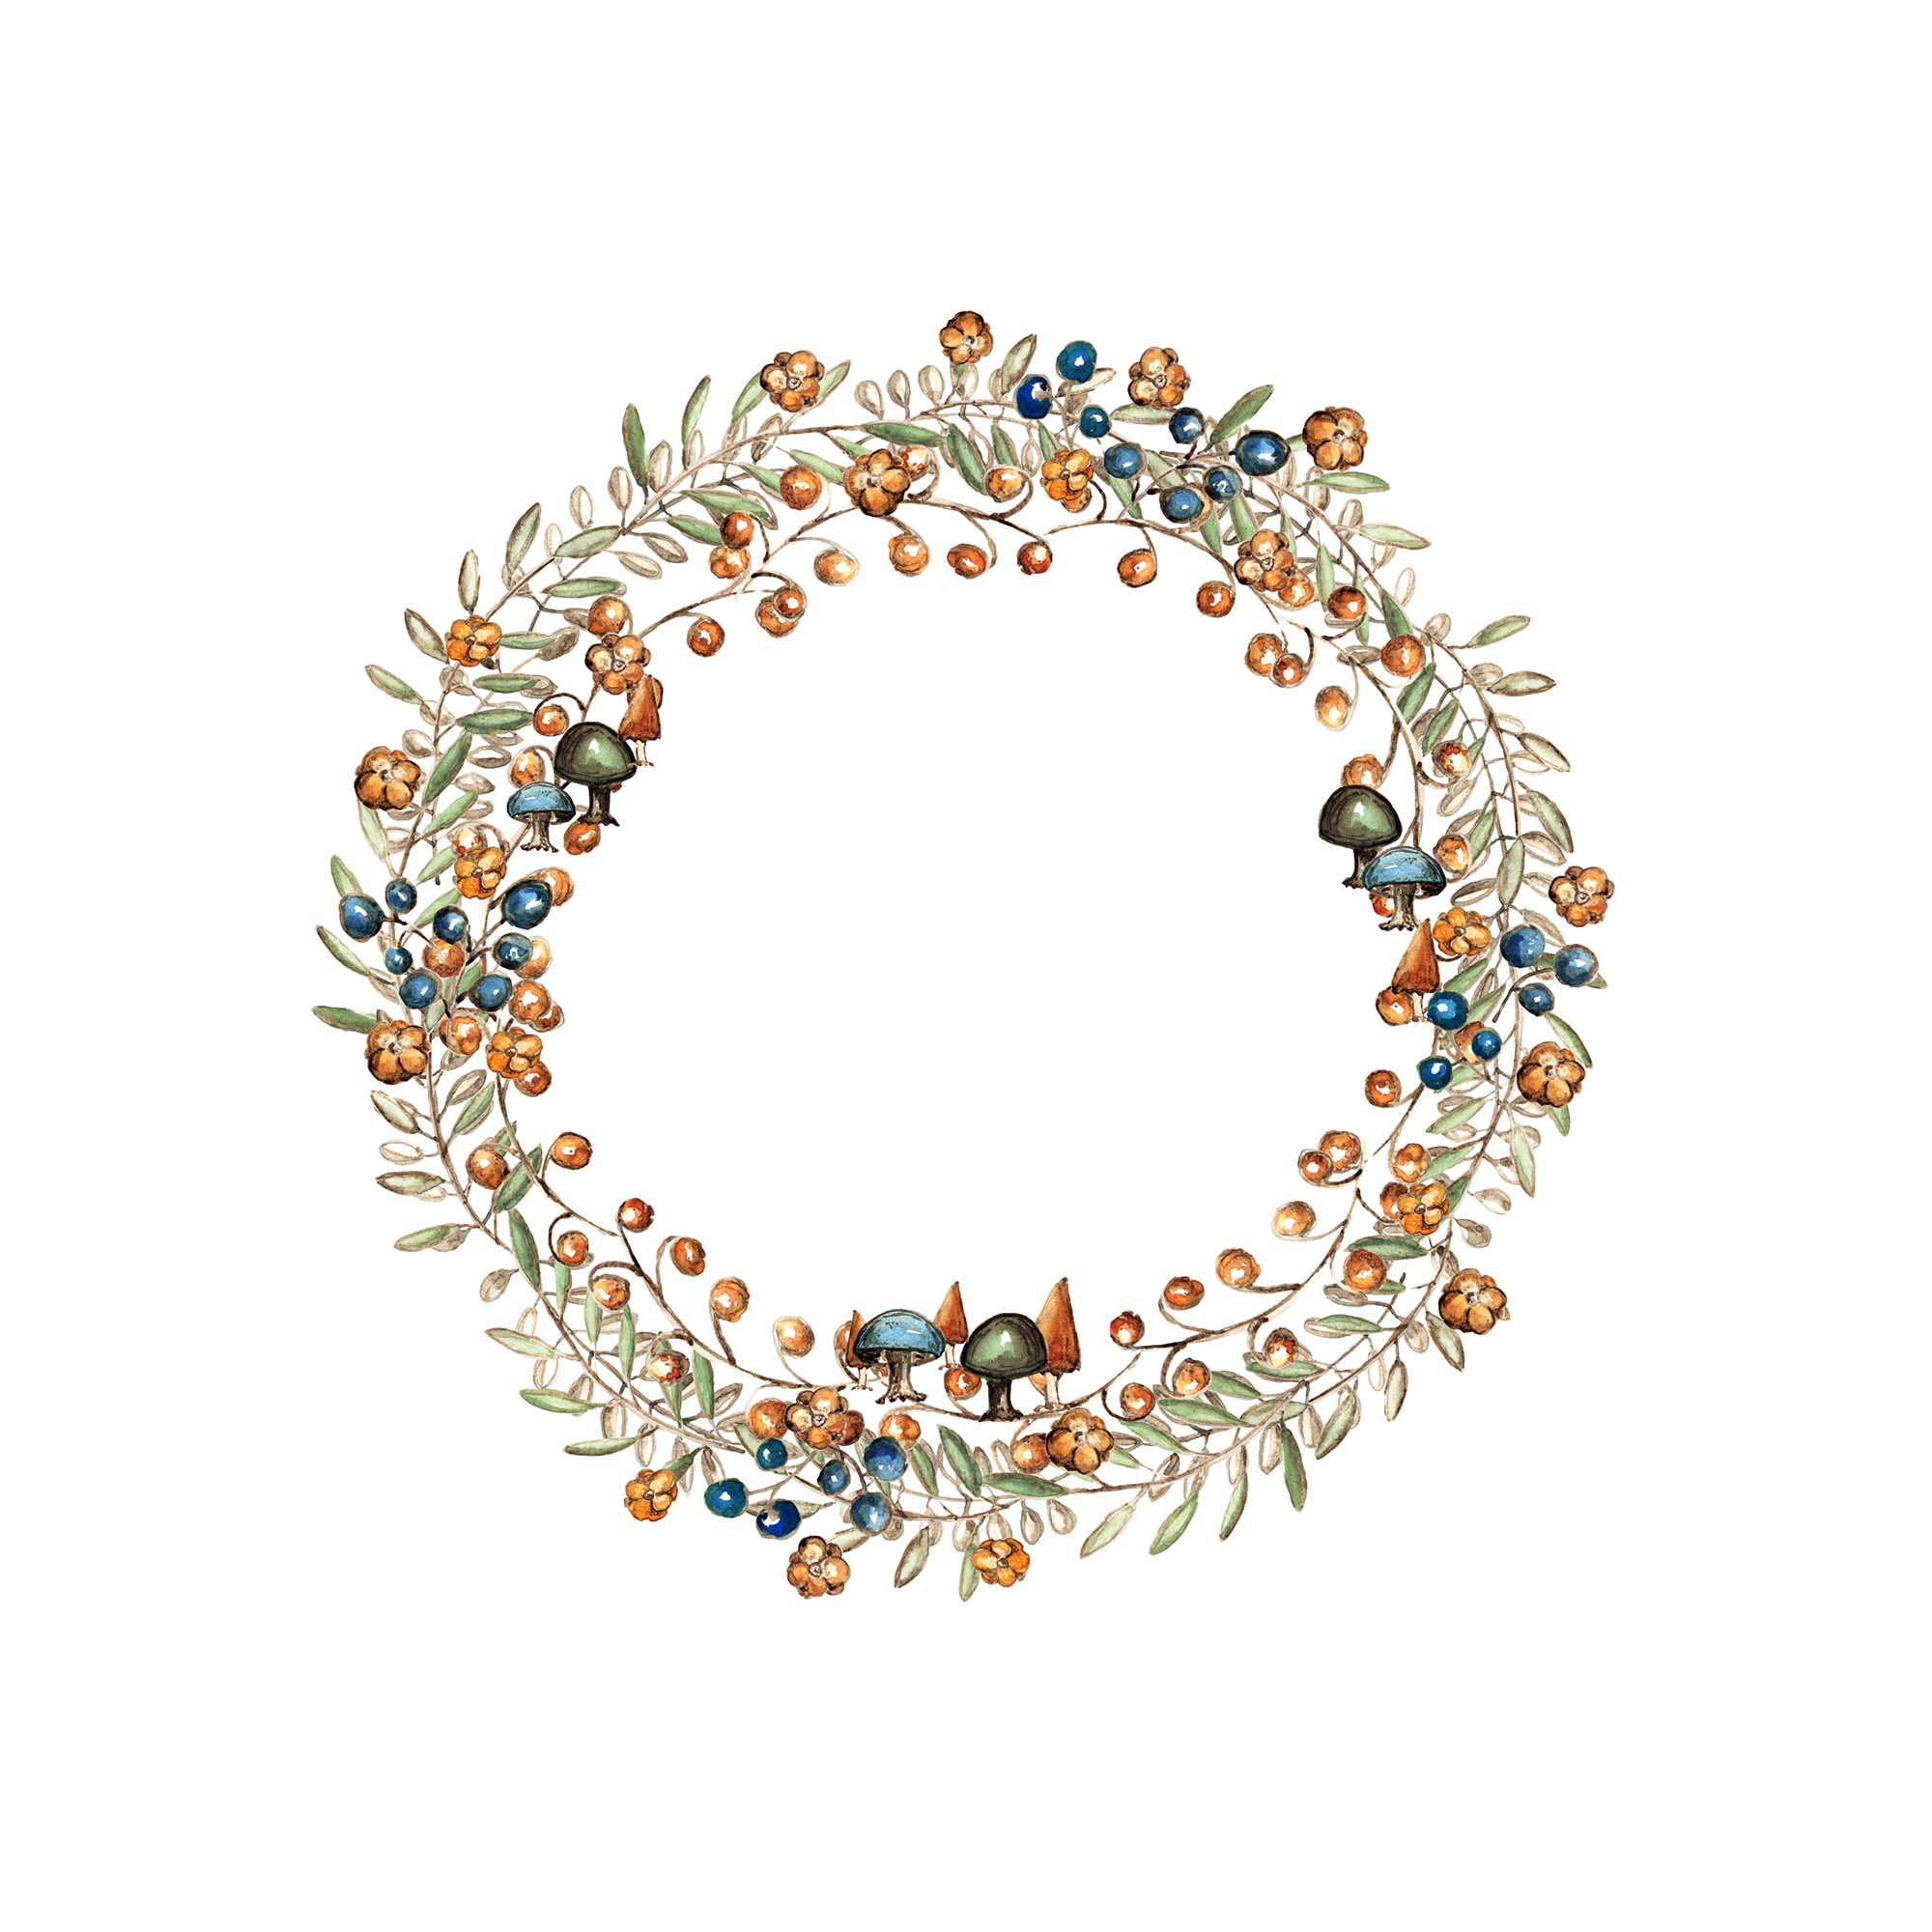 Watercolor Wreath Design